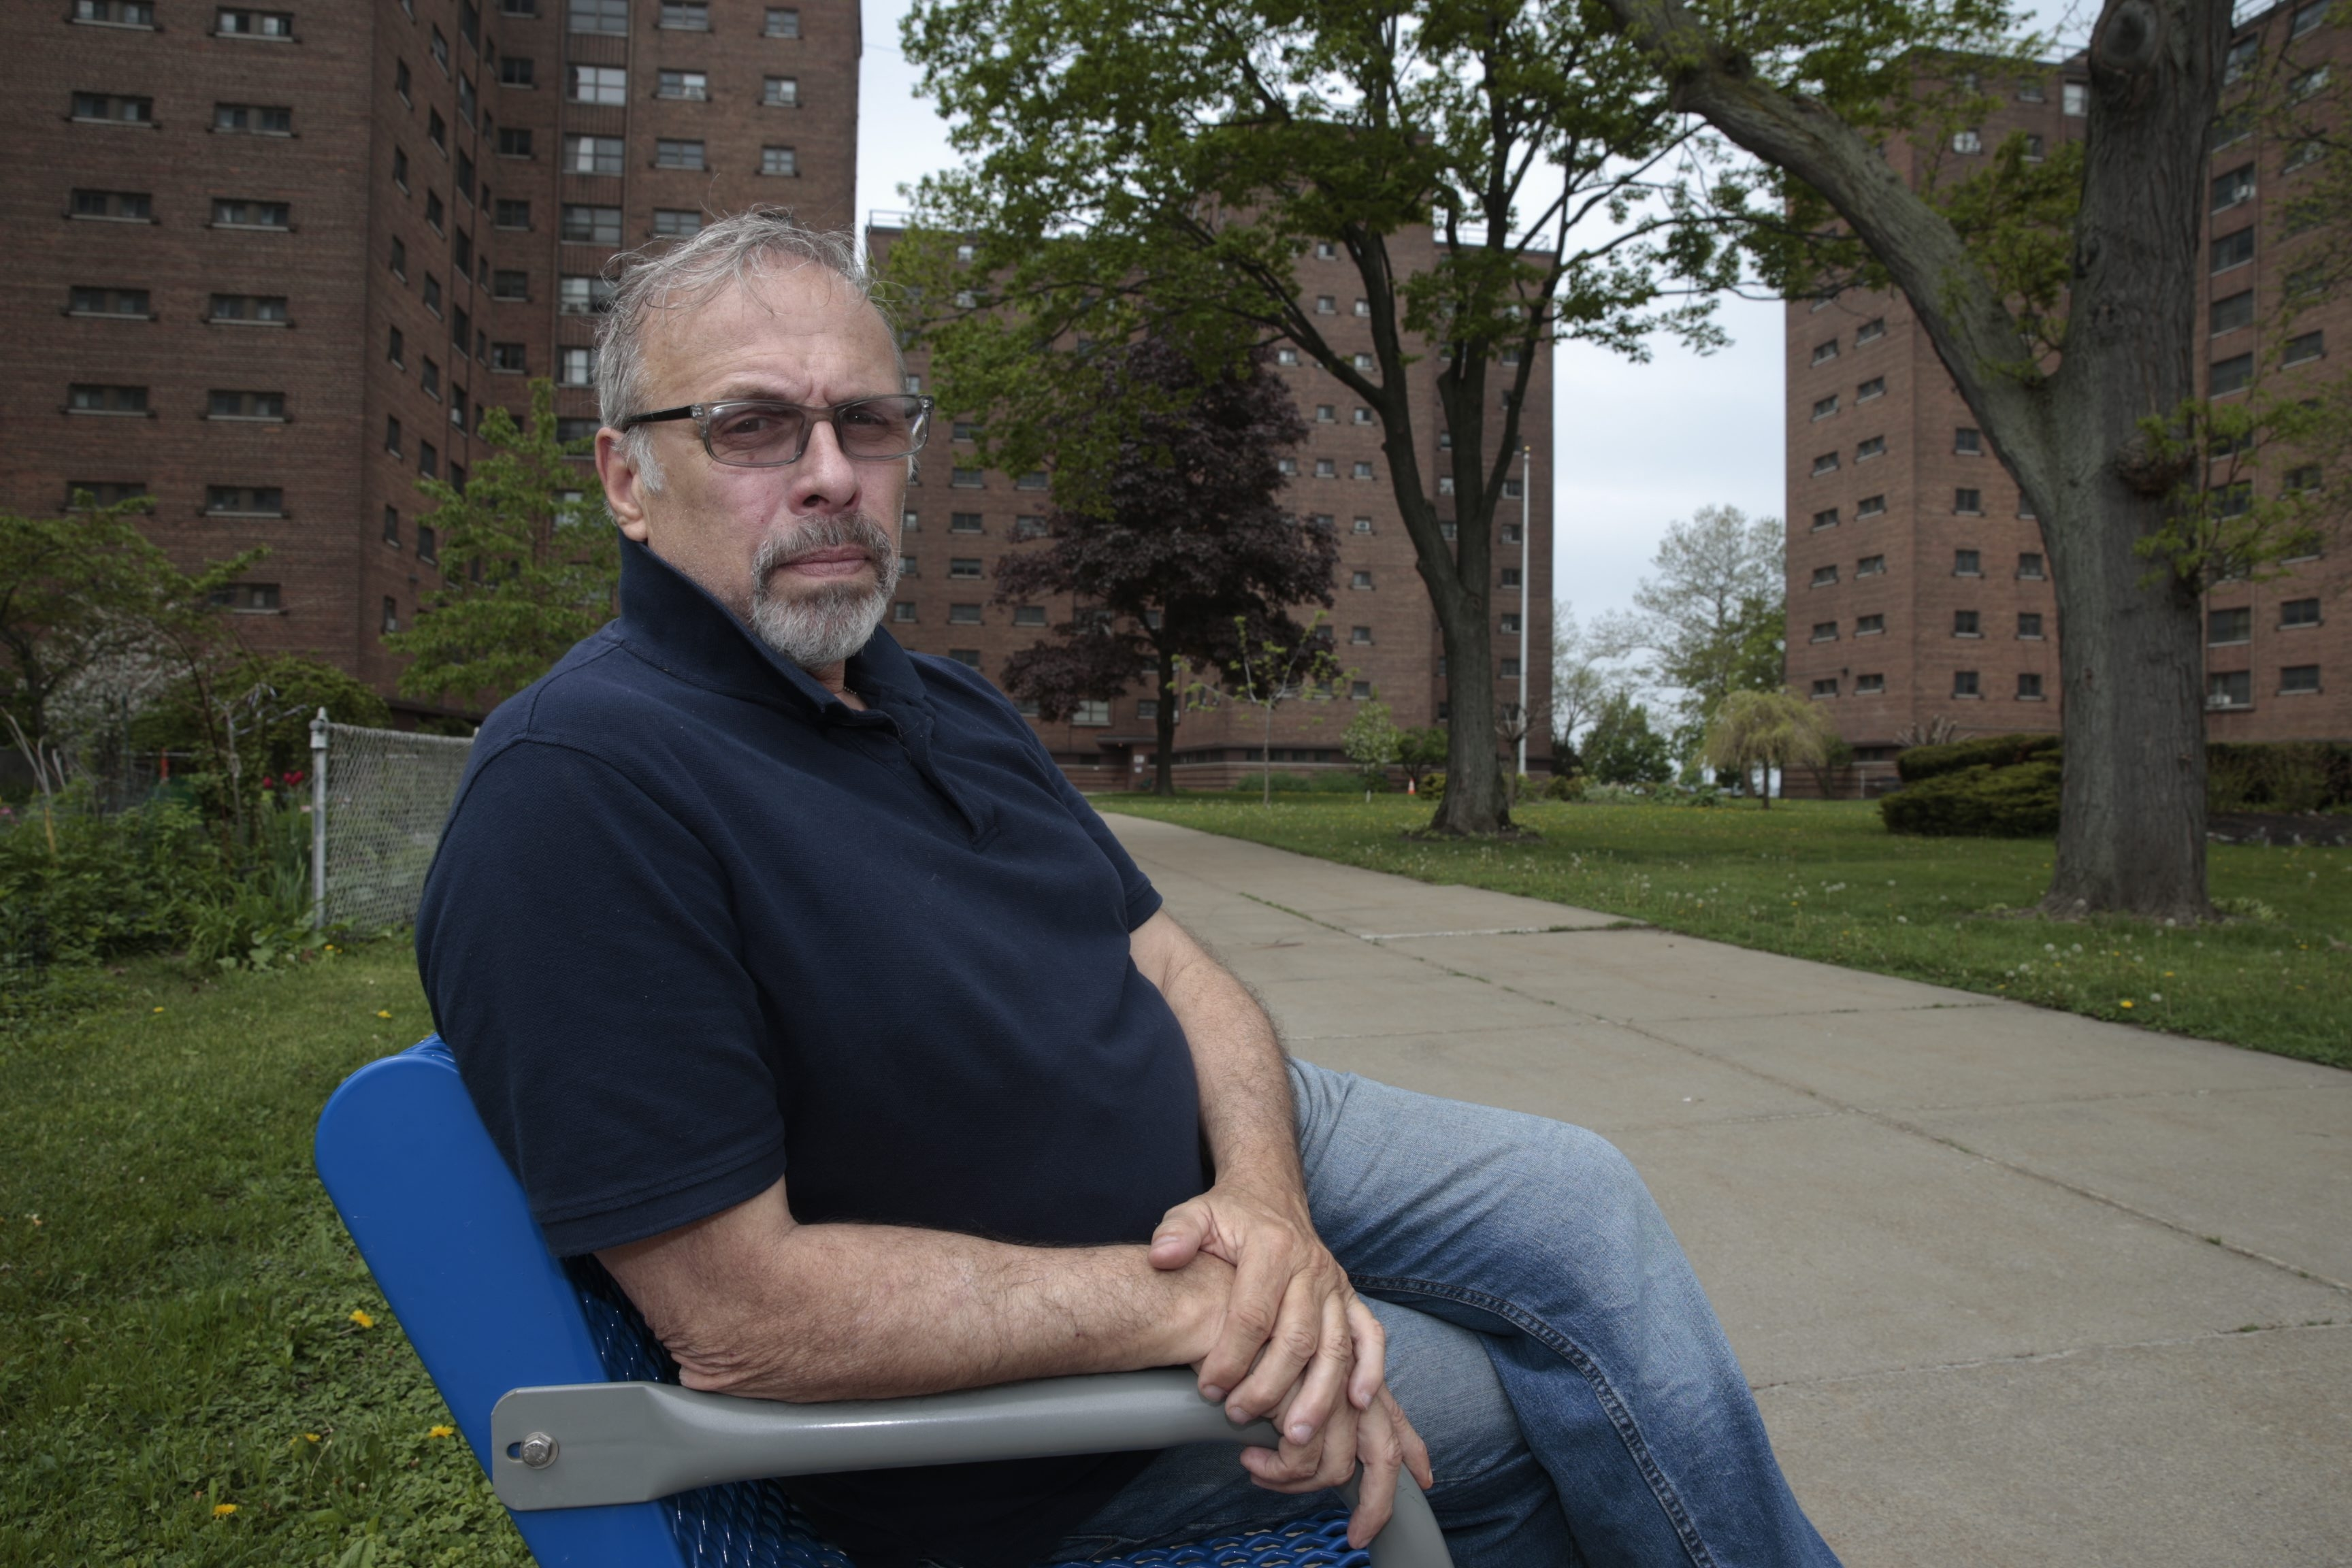 Joseph A. Mascia says he moved out of a home he owned and into the low-income Marine Drive Apartments  in the late 1990s, after  he suffered a financial setback in his concrete business and was injured in a car accident.